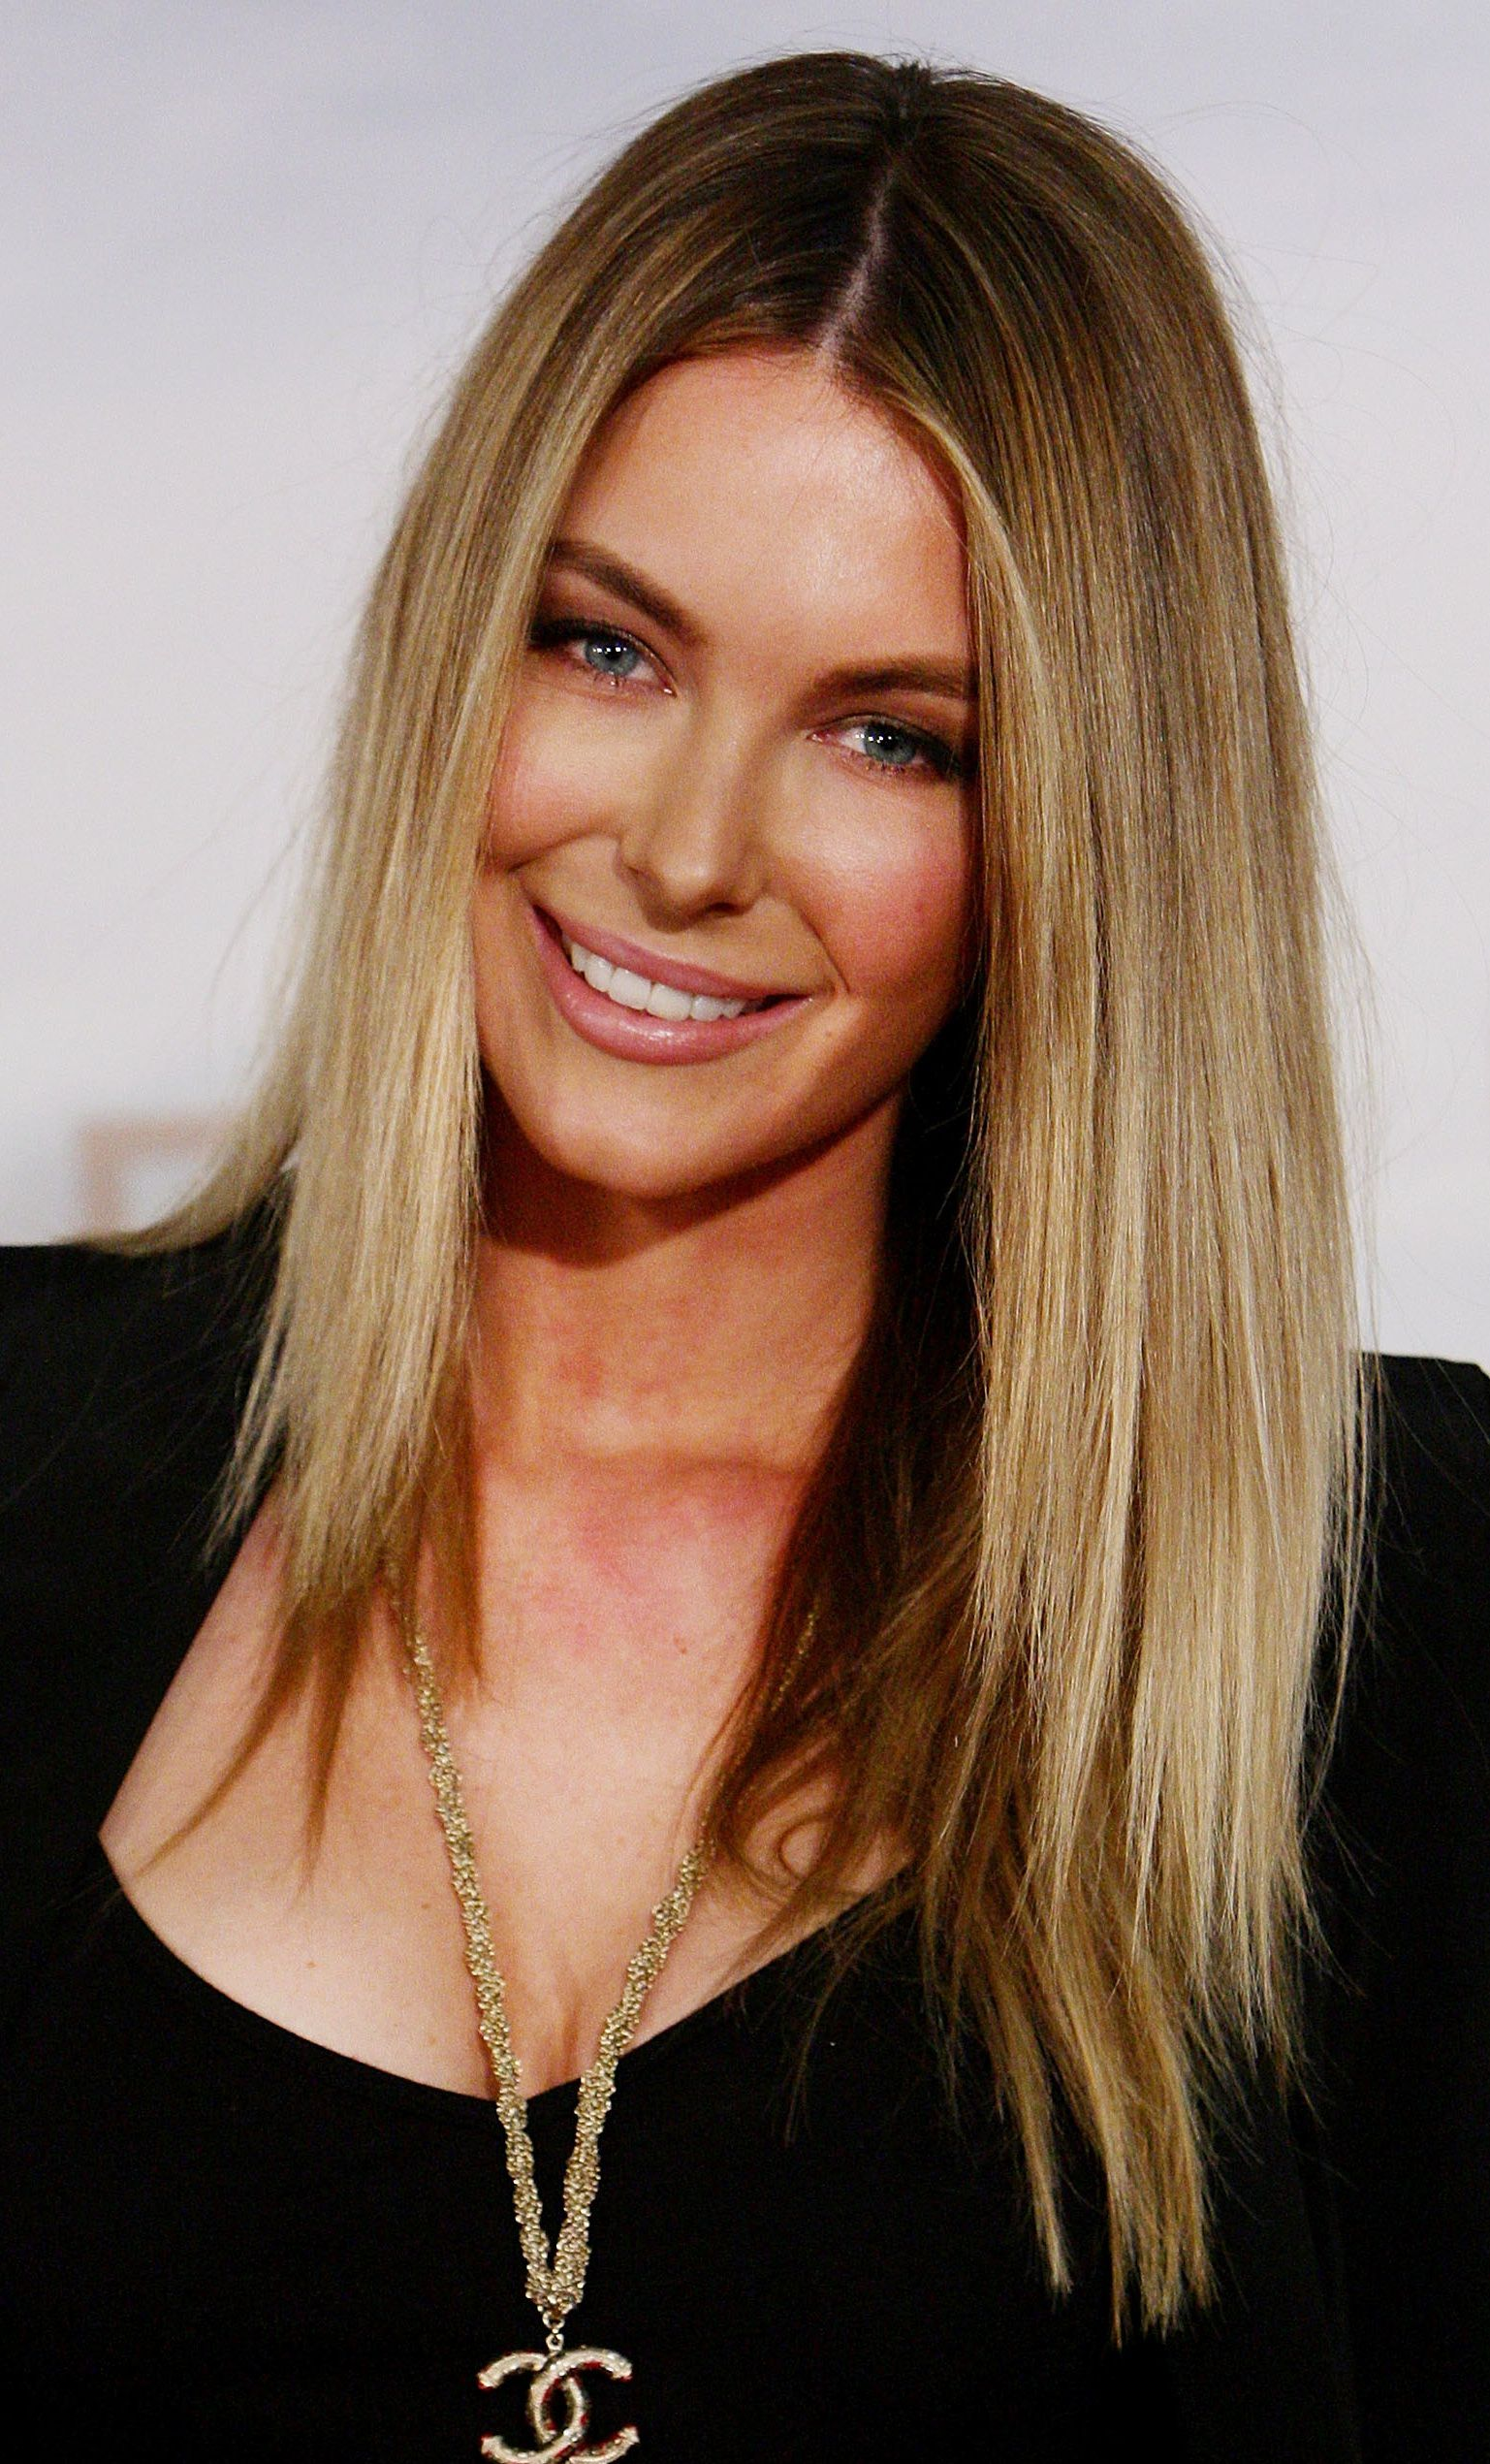 Hair color images - Hair Color Images 59